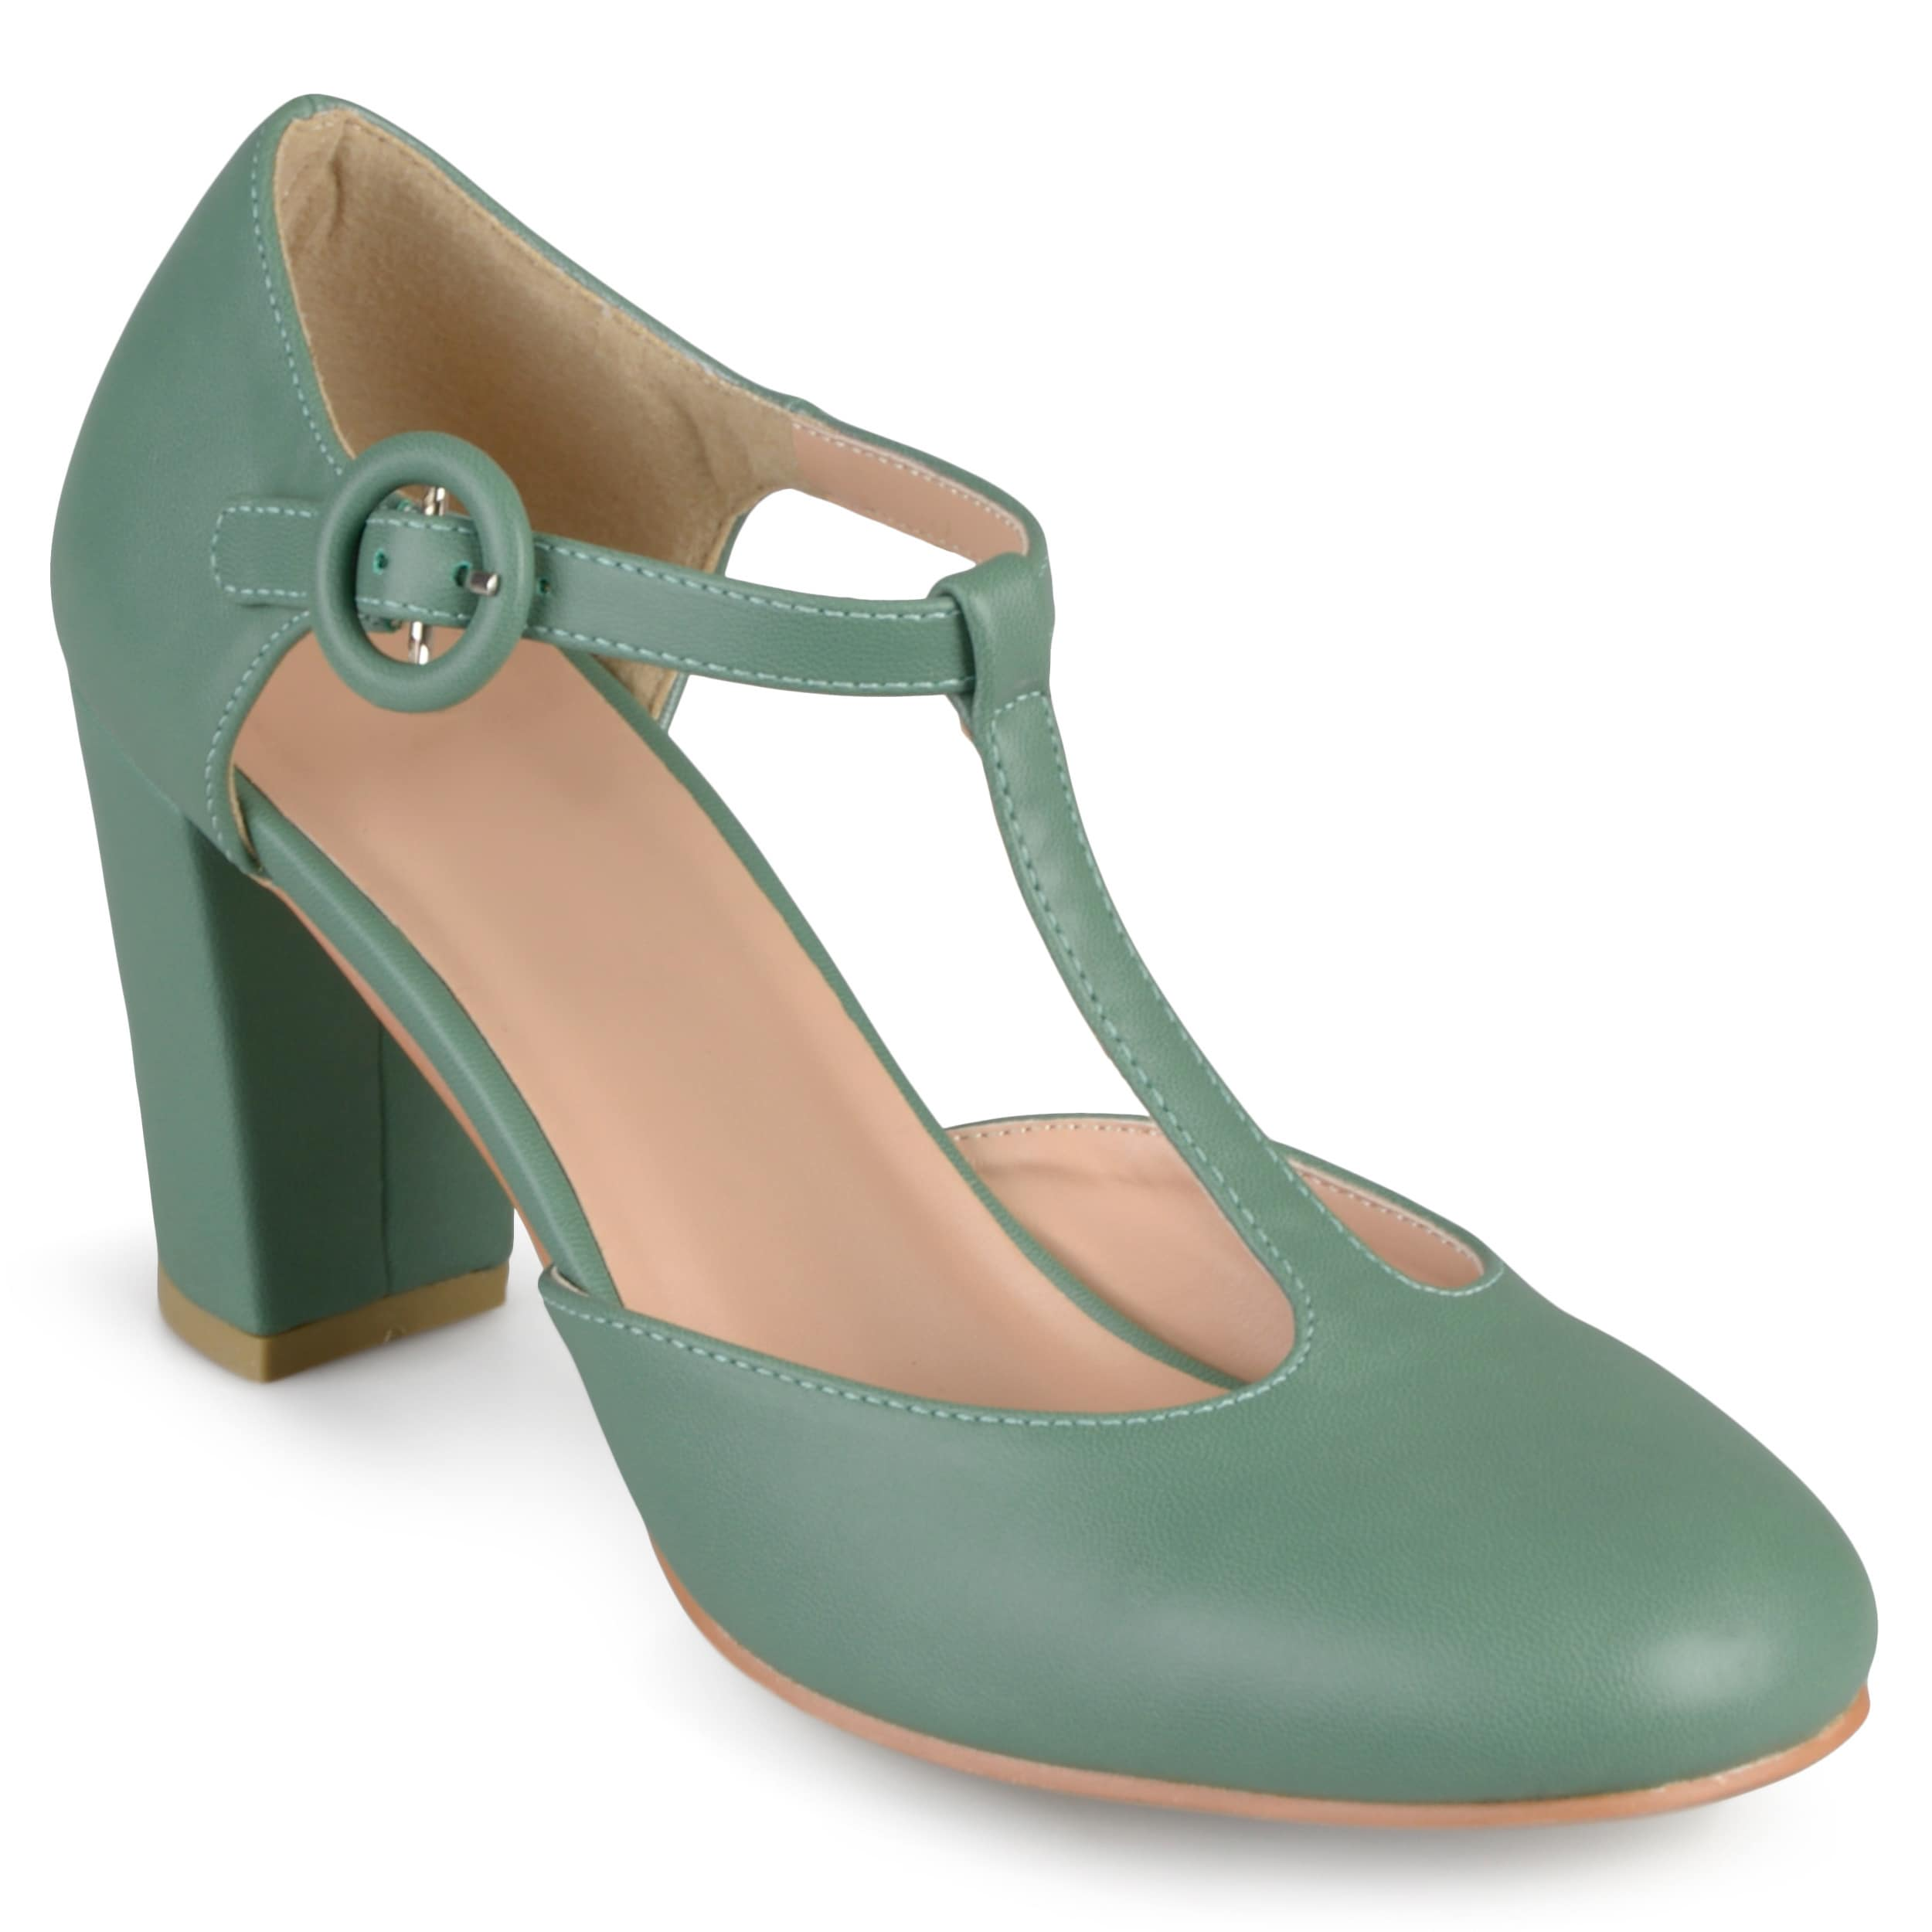 acb833ae042 Shop Journee Collection Women s  Talie  Round Toe T-strap Pumps - On ...